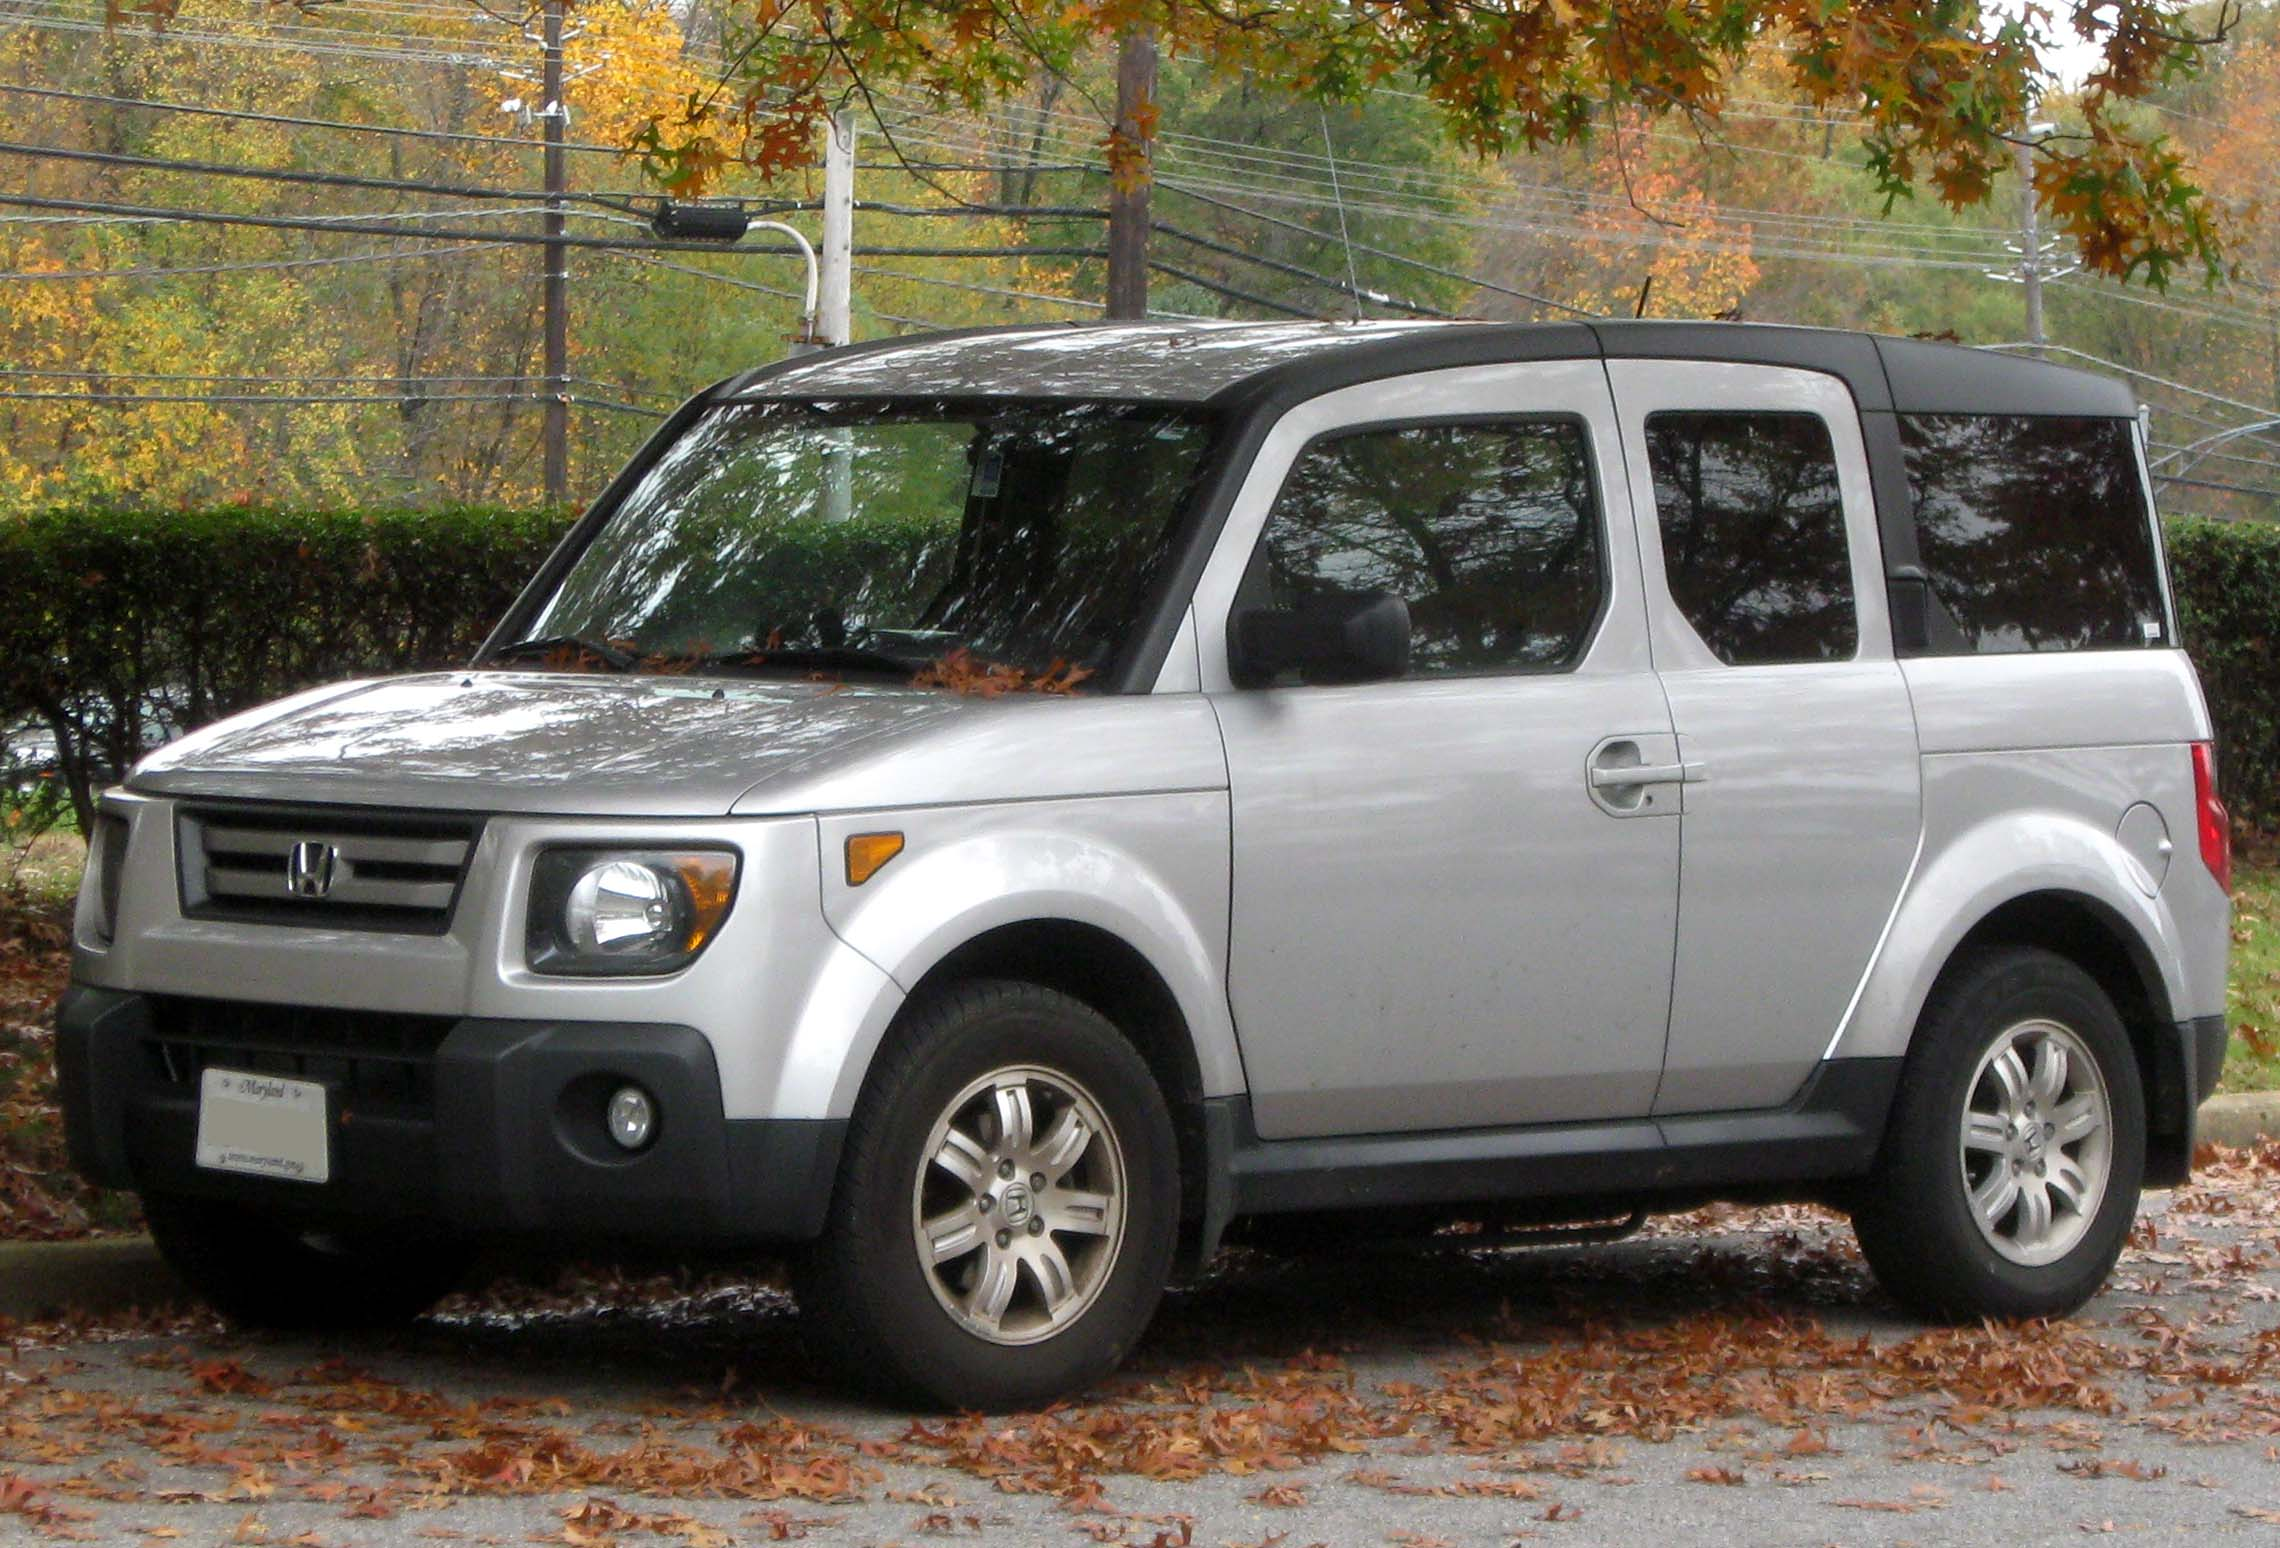 honda element tractor construction plant wiki the classic vehicle and machinery wiki. Black Bedroom Furniture Sets. Home Design Ideas